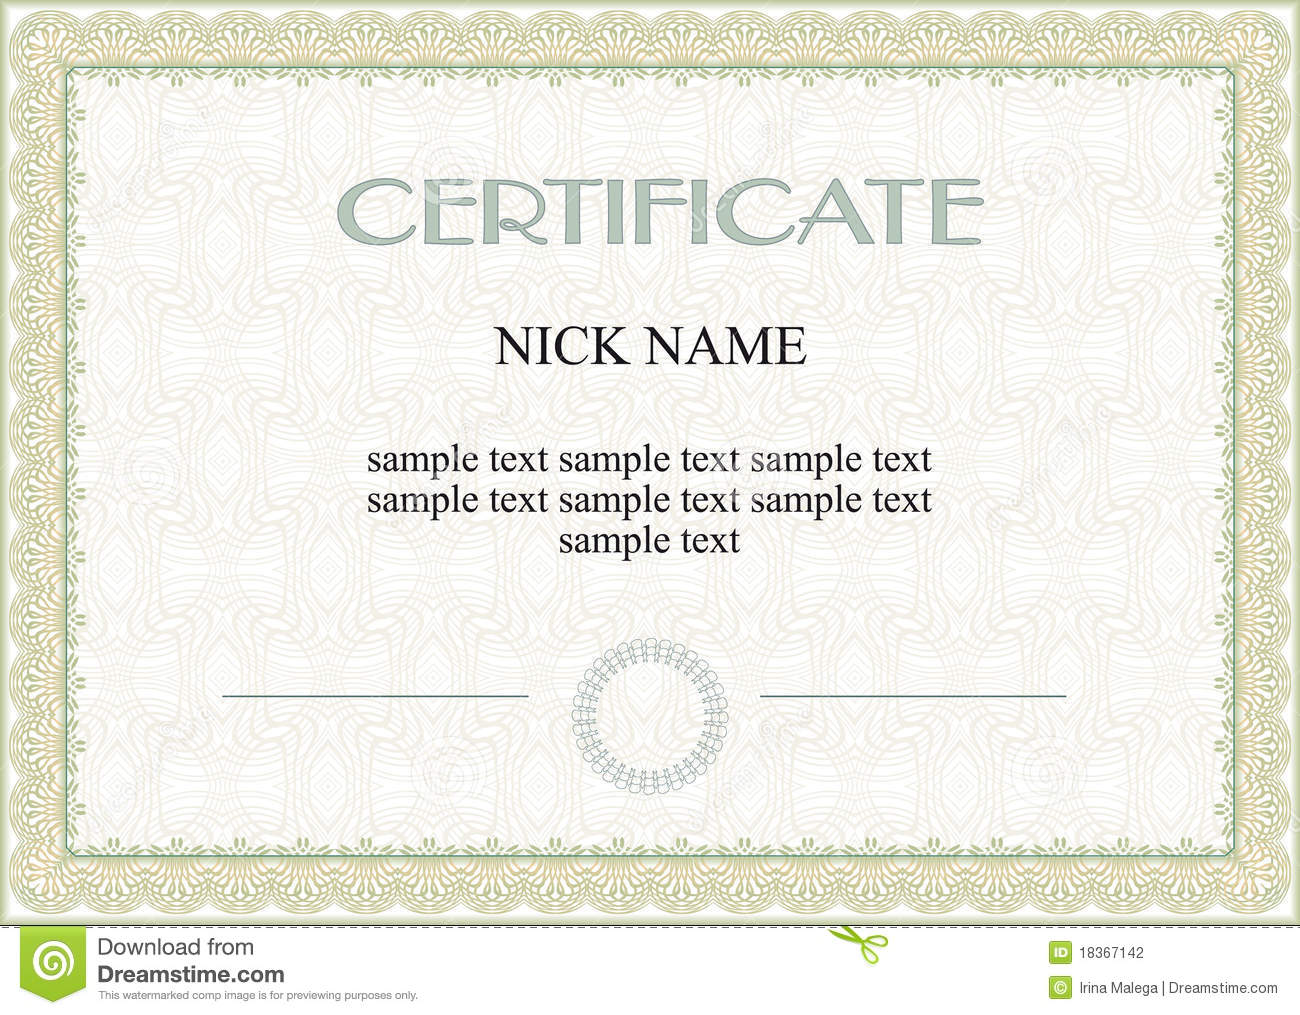 Reiki certificate template download gallery certificate design reiki certificate template download choice image certificate free reiki certificate templates image collections templates reiki certificate xflitez Images